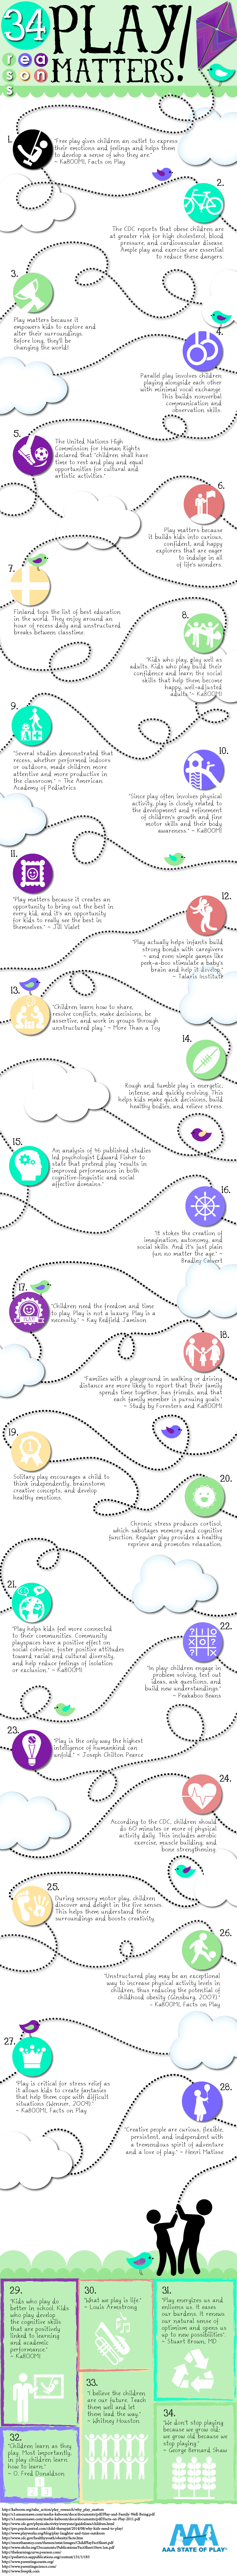 Play is Important: 34 Reasons Why - Infographic